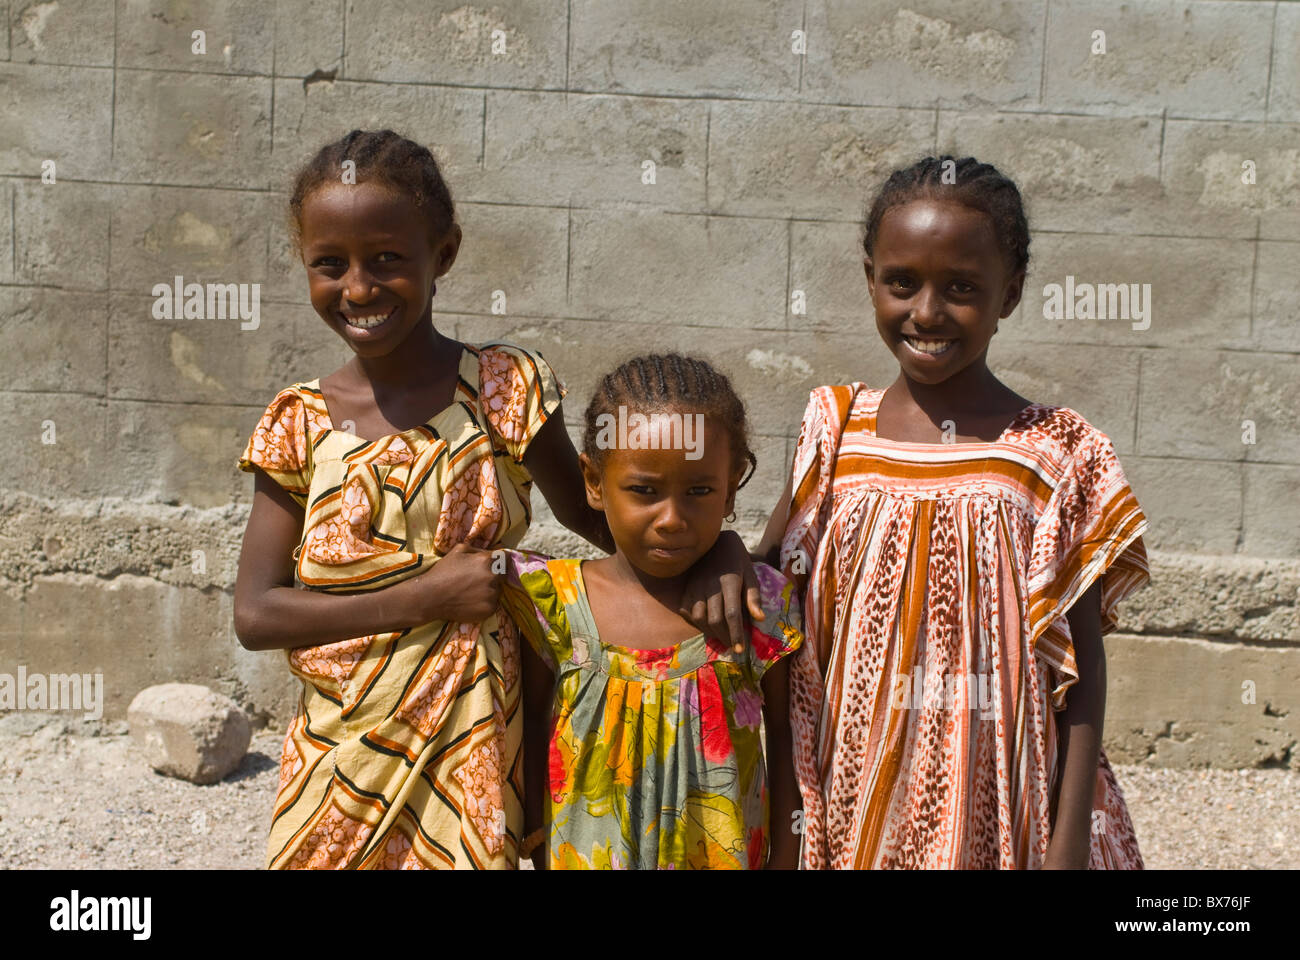 Happy young girls, Tadjoura, Republic of Djibouti, Africa - Stock Image